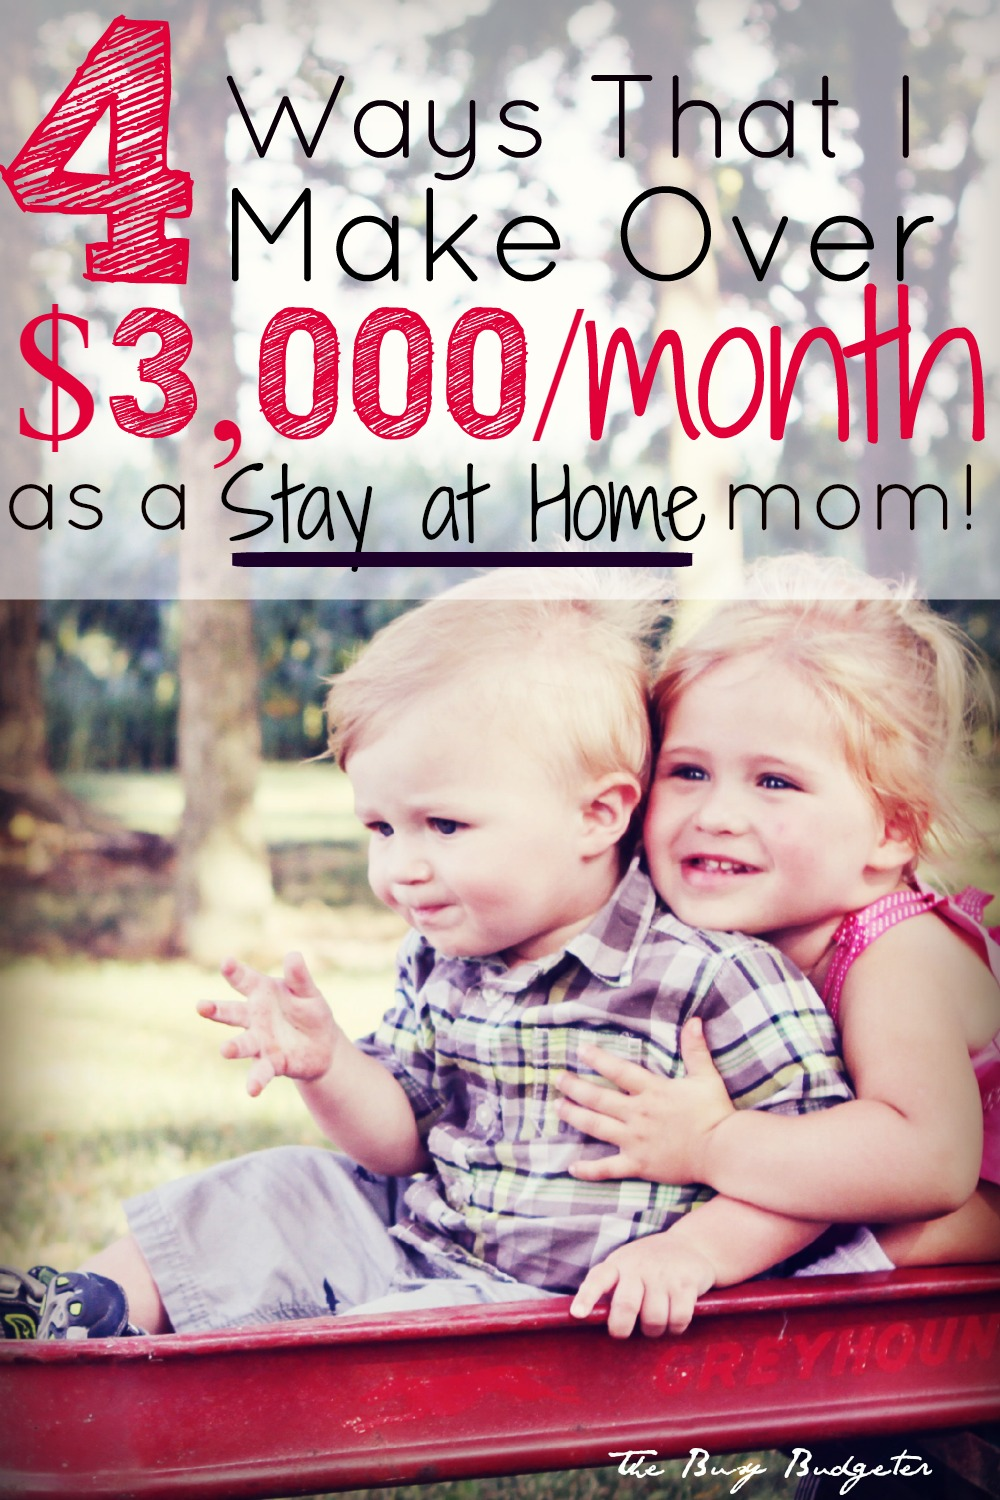 4-Ways-that-I-make-over-3k-a-month-as-a-stay-at-home-mom